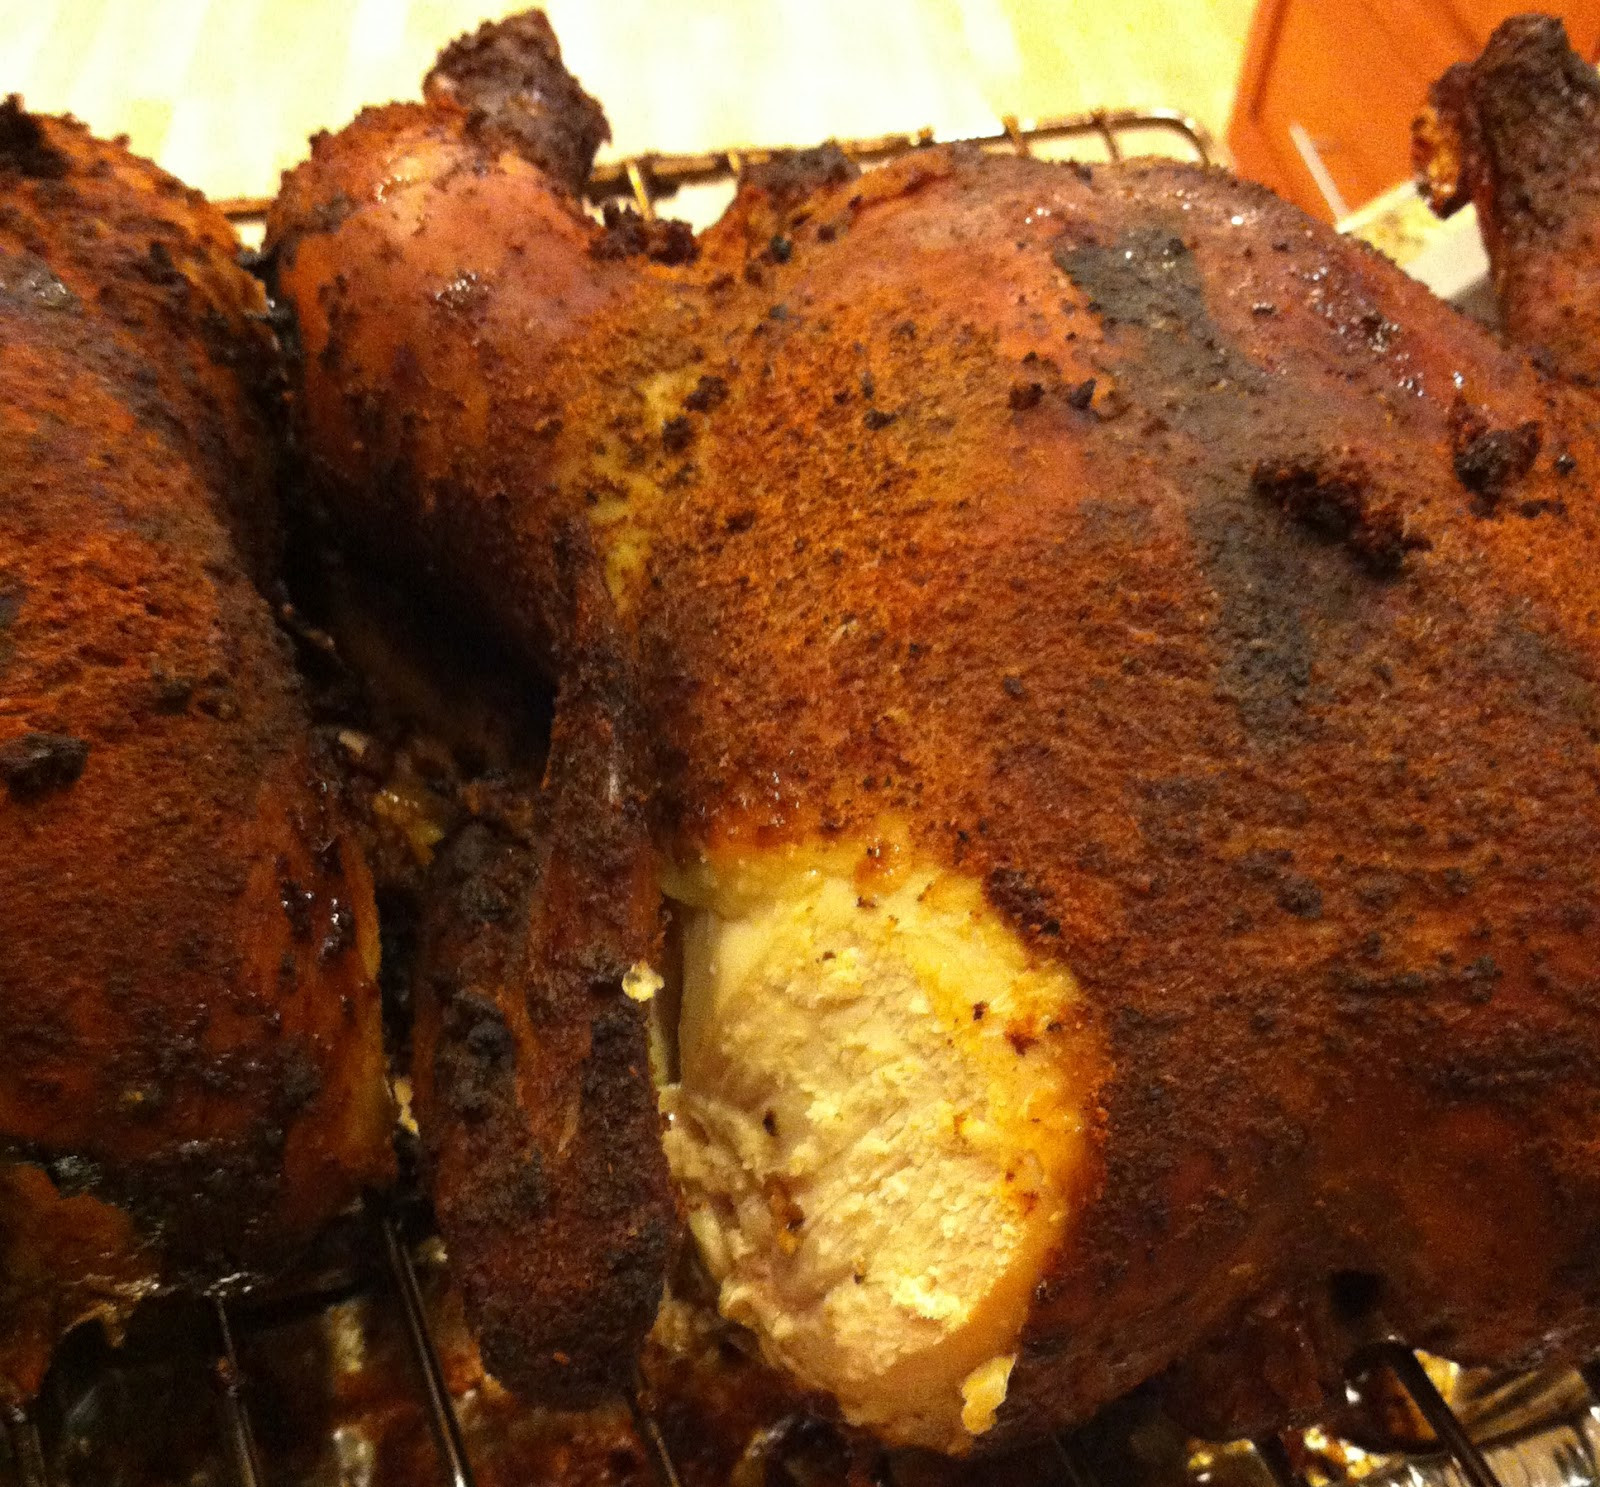 Smoking Whole Chicken In Masterbuilt Electric Smoker  TASTE OF HAWAII RIBS AND CHICKEN COOKED IN MASTERBUILT